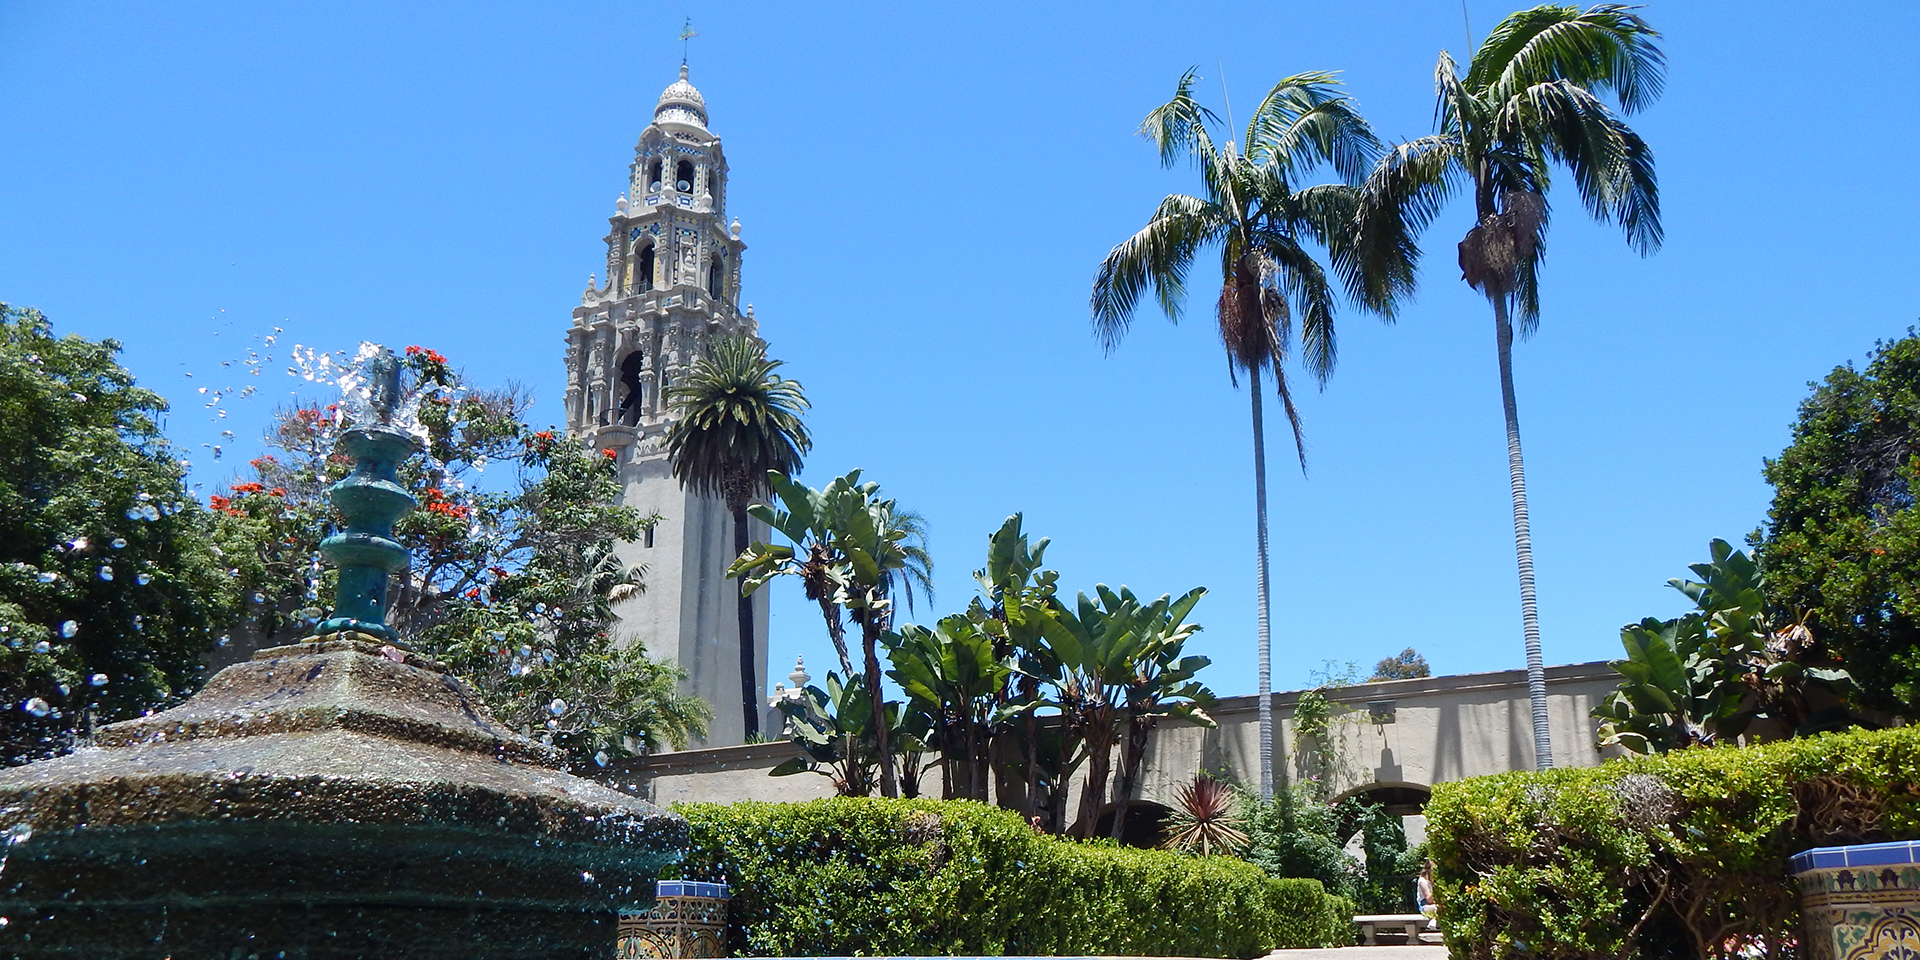 View of California Tower from Alcazar Garden